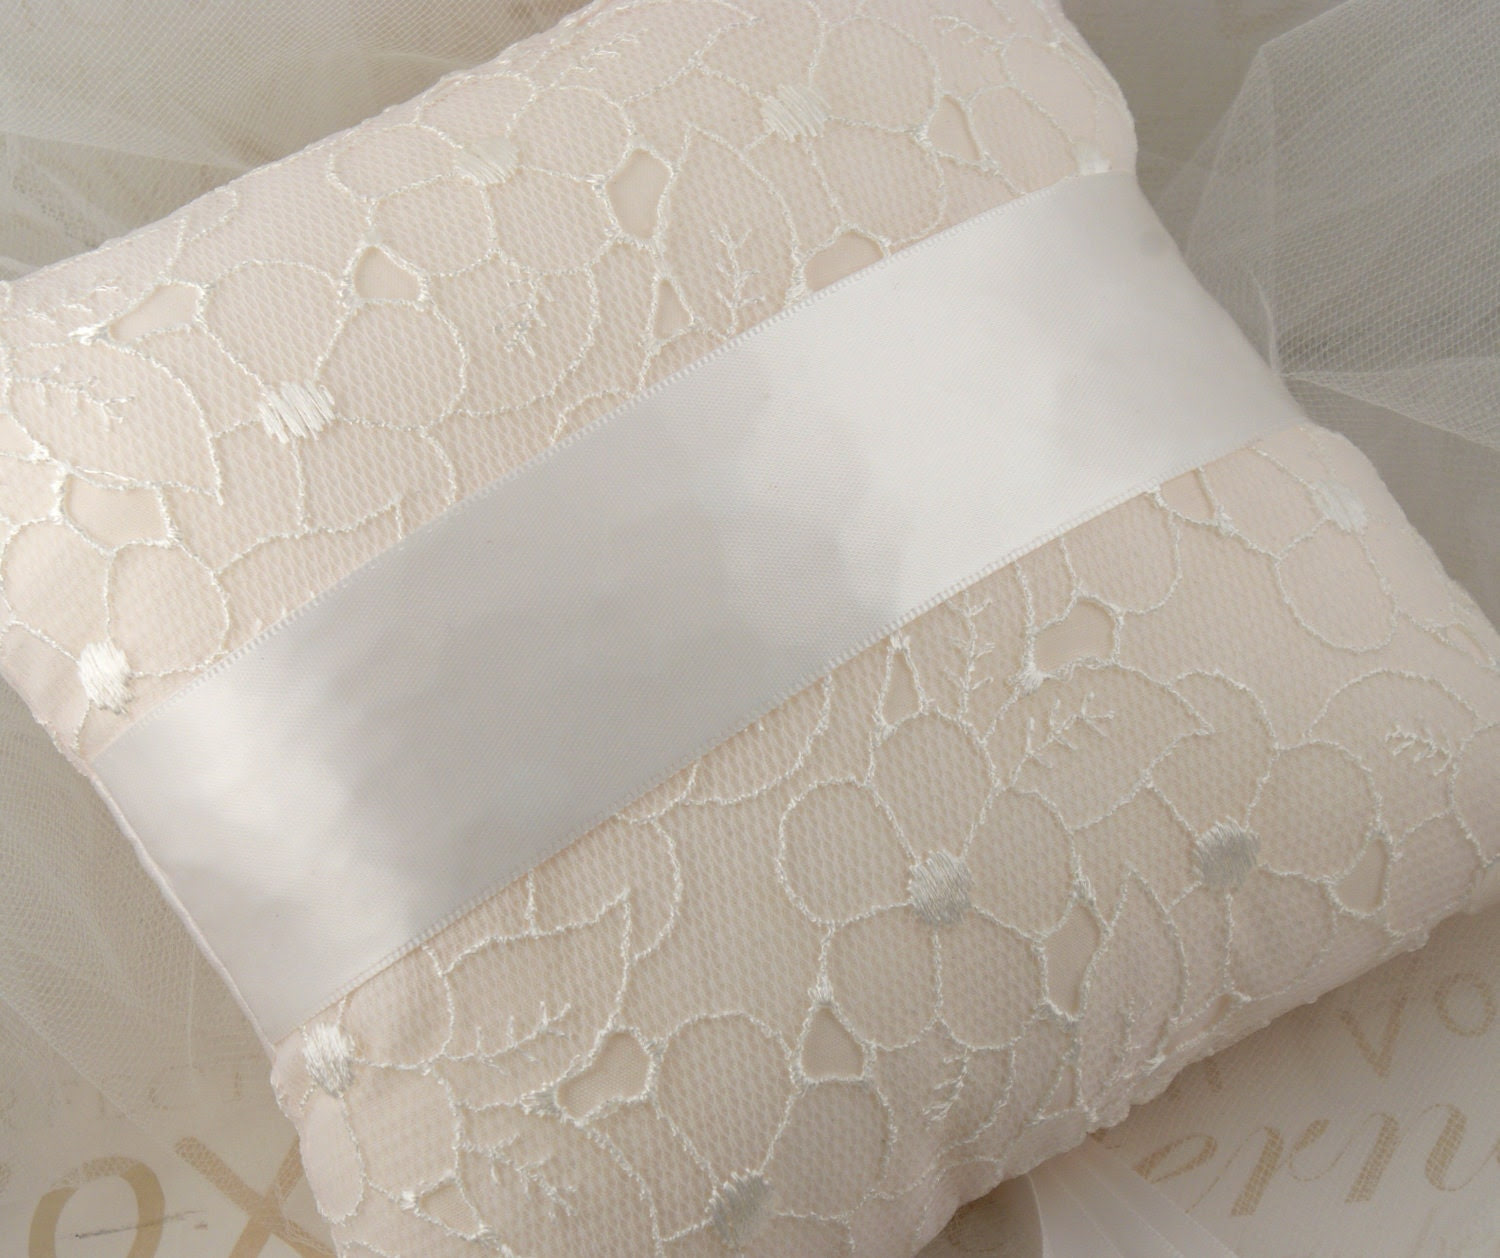 Bridal Ring Pillow White, Cream and Ivory with Lace and Chiffon Flowers, Jewels and Pearls- Lea